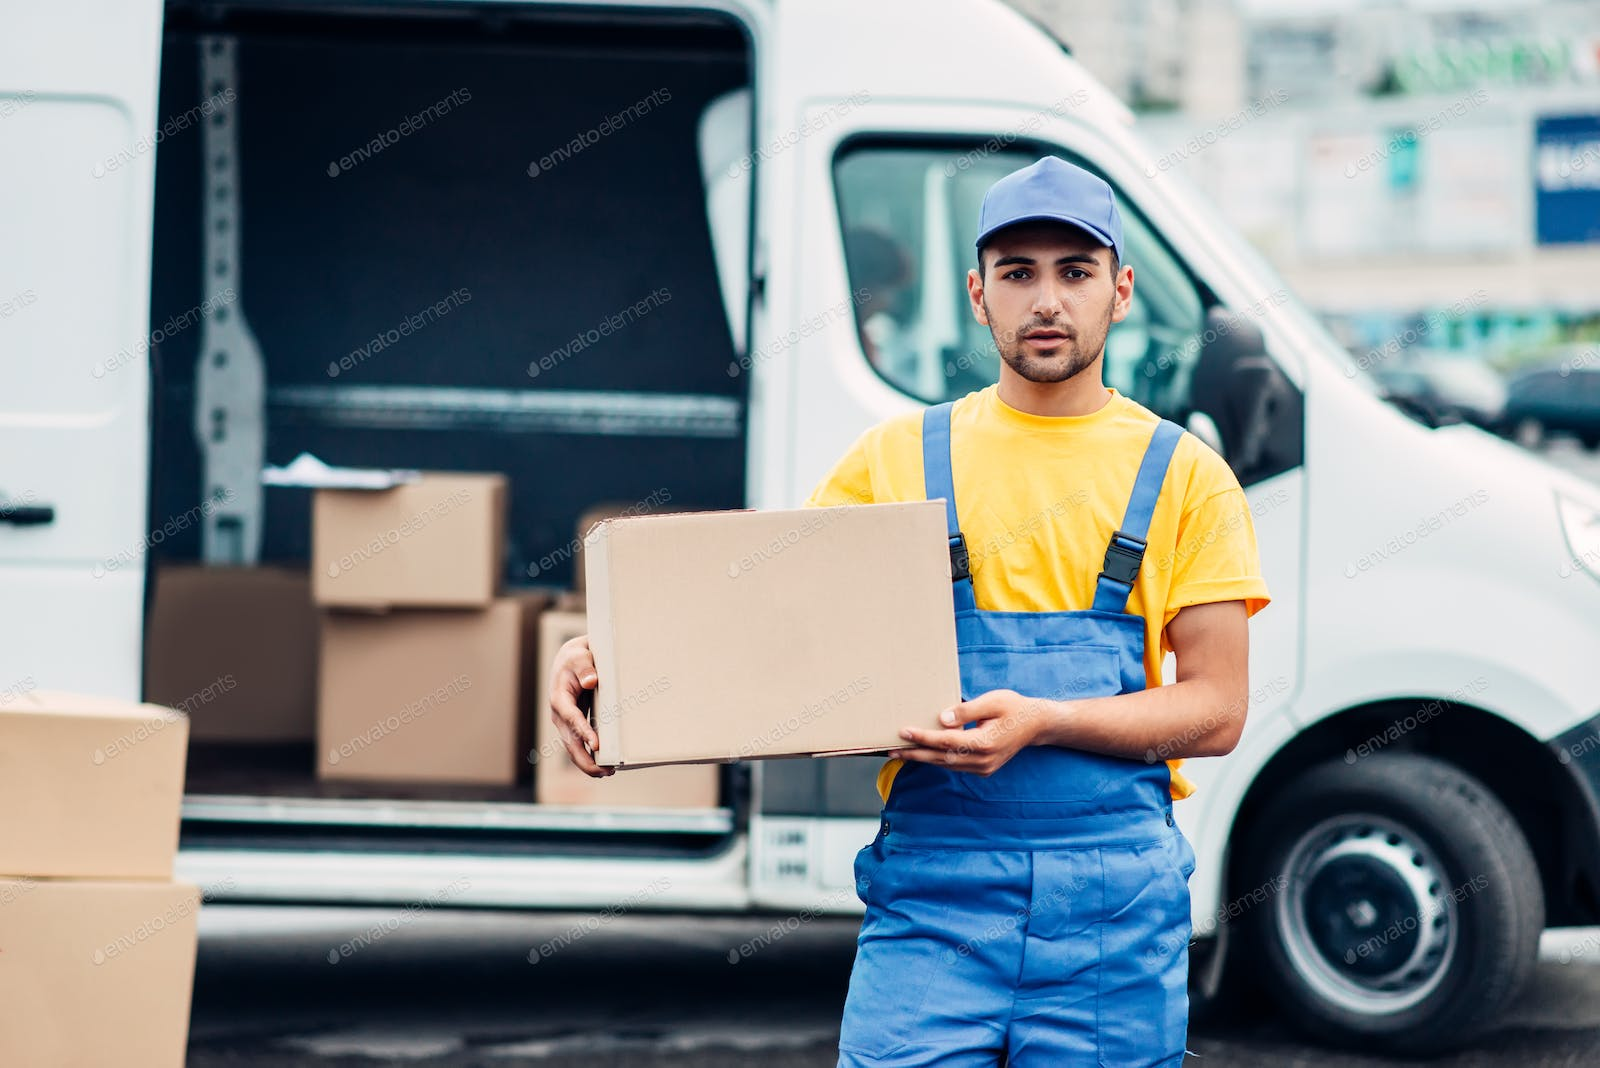 Cargo delivery service, male courier unload truck photo by